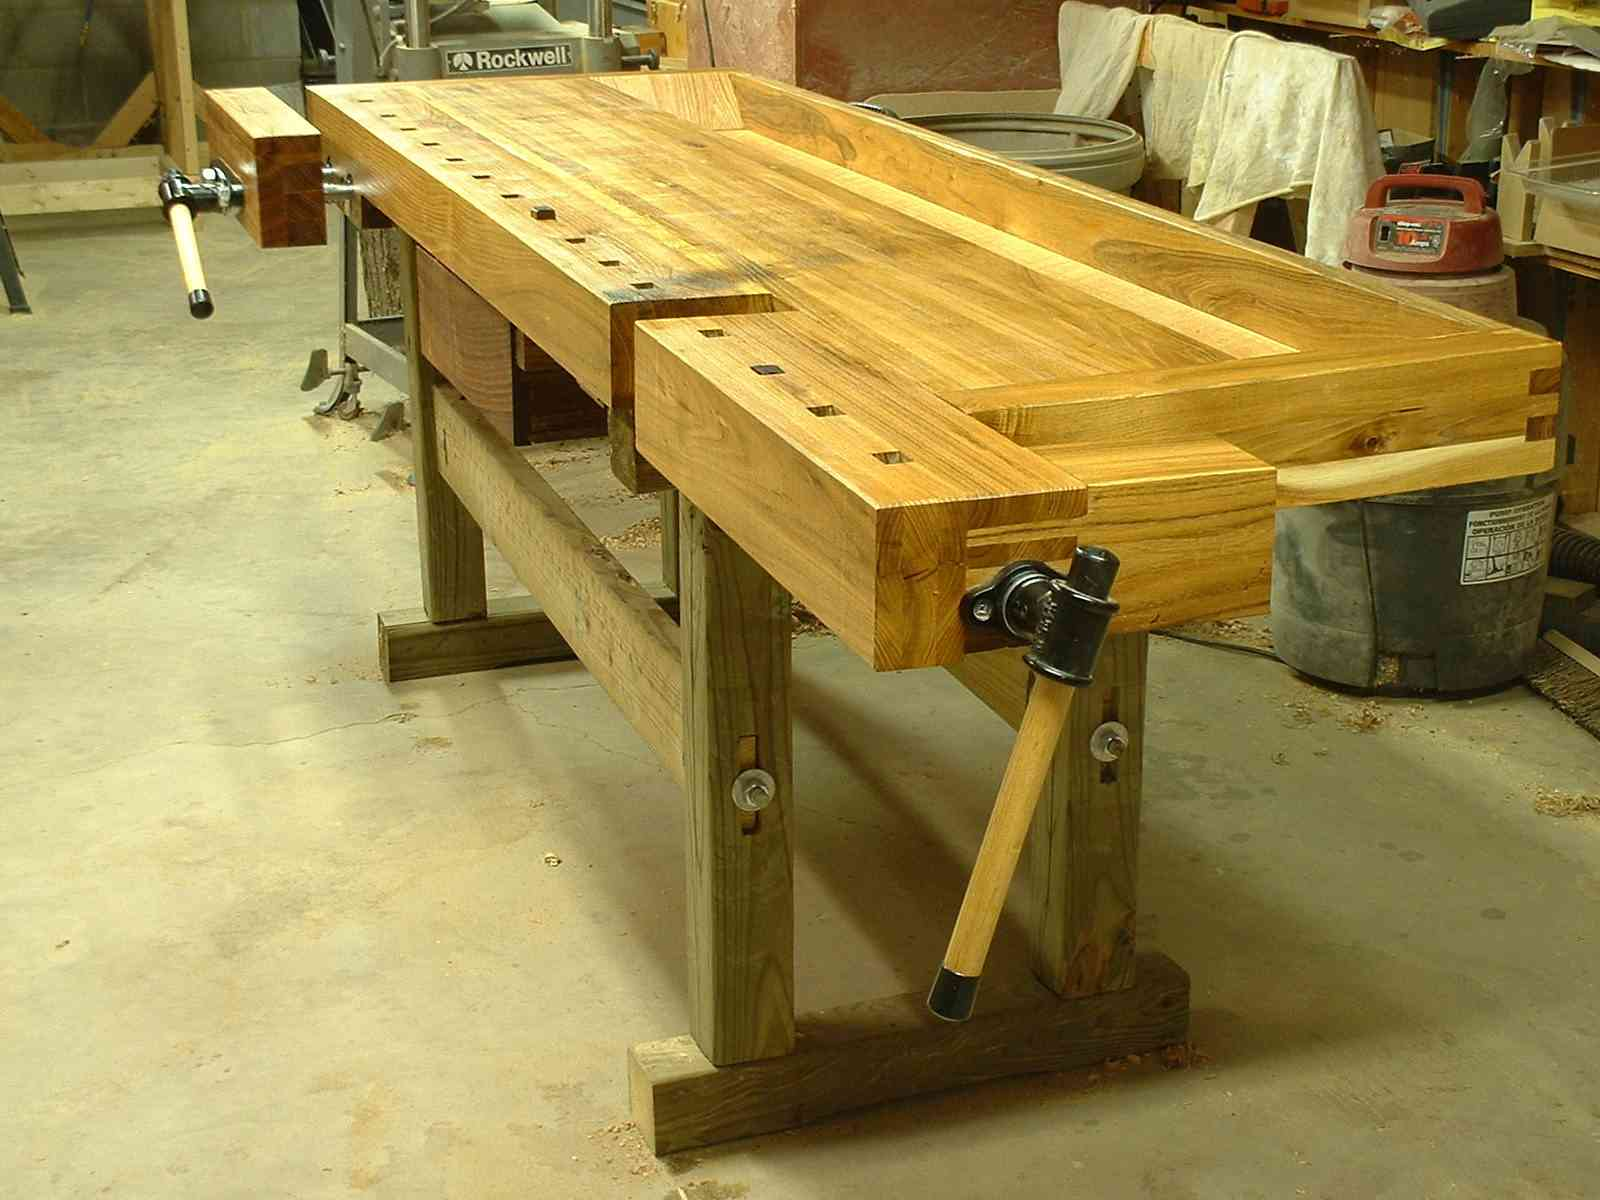 proper workbench is a real time saver, you can make that yourself